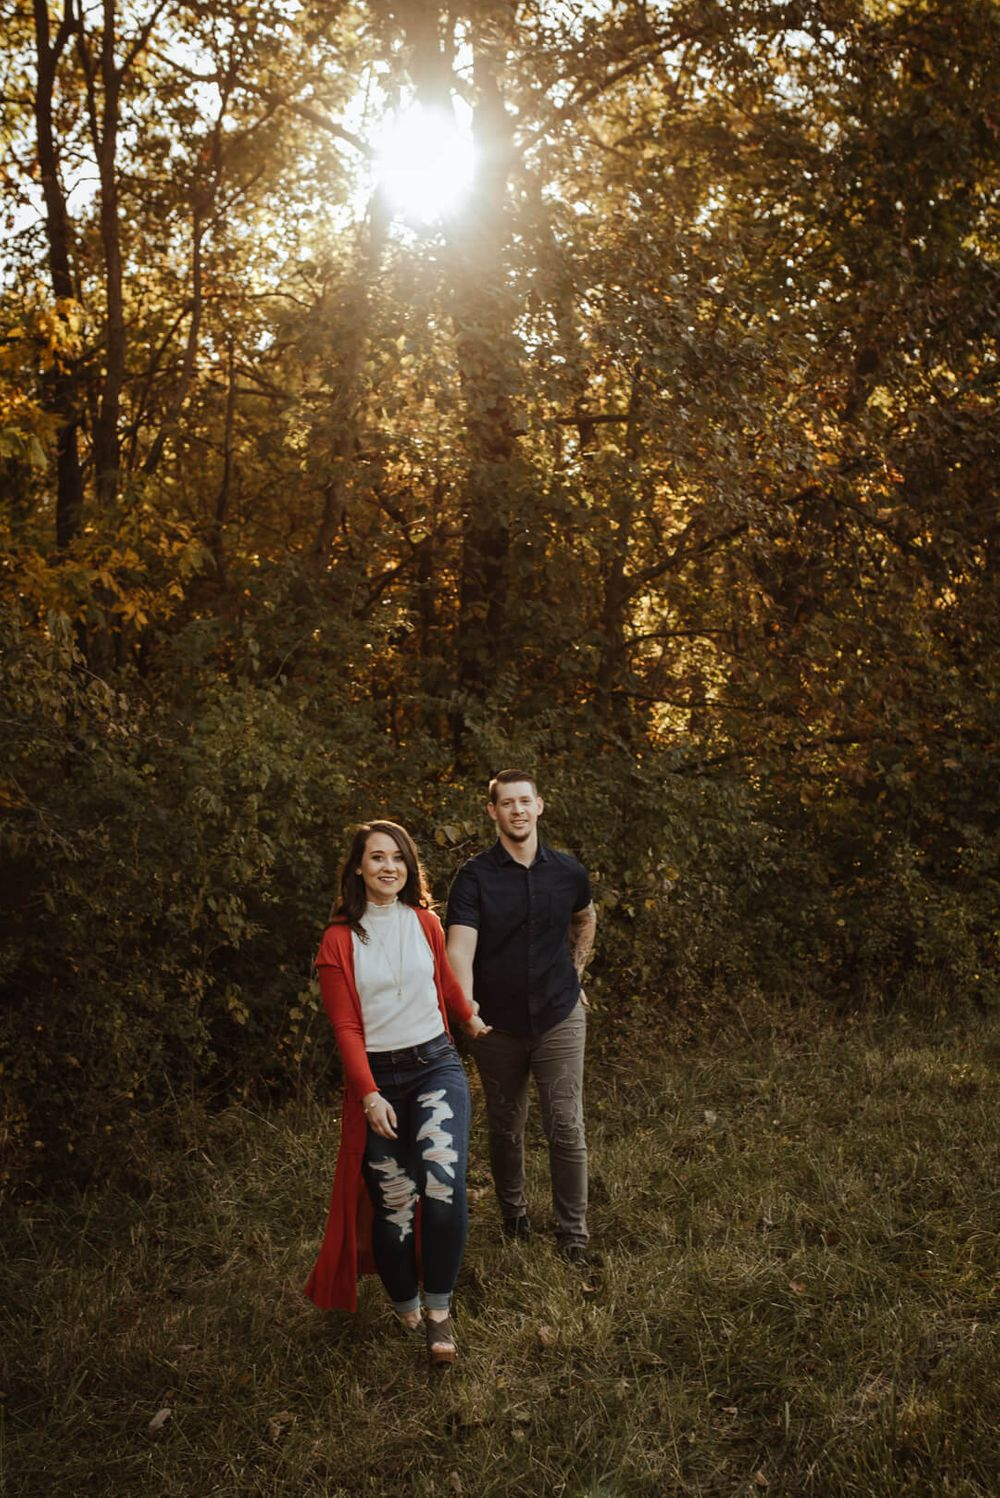 Blog Engagement Session Kansas City Photography Couple Strolling through woods with sunset